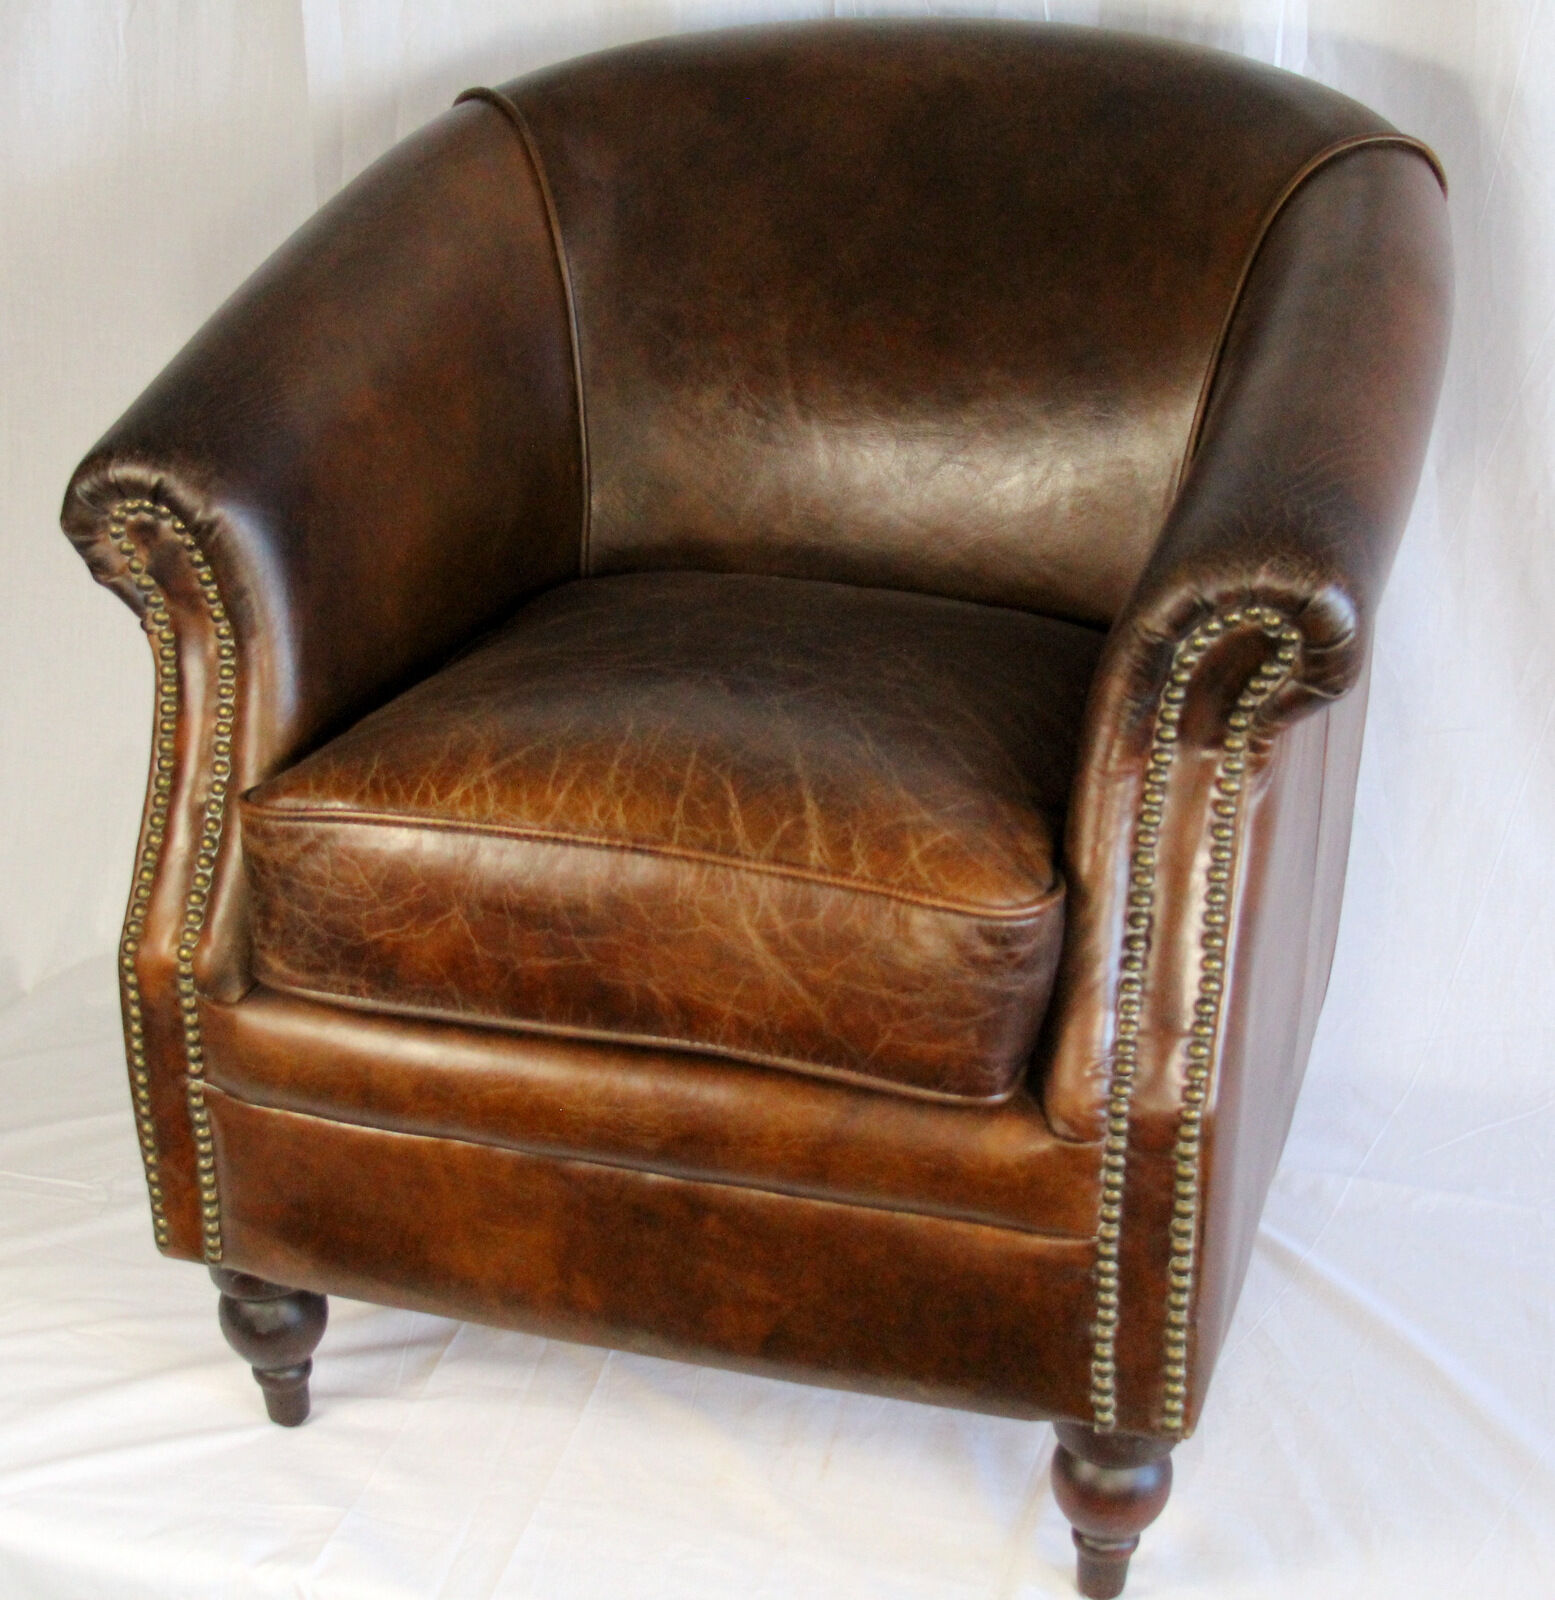 club chairs for small spaces antique wooden cane seat 27 034 wide arm chair vintage brown cigar italian